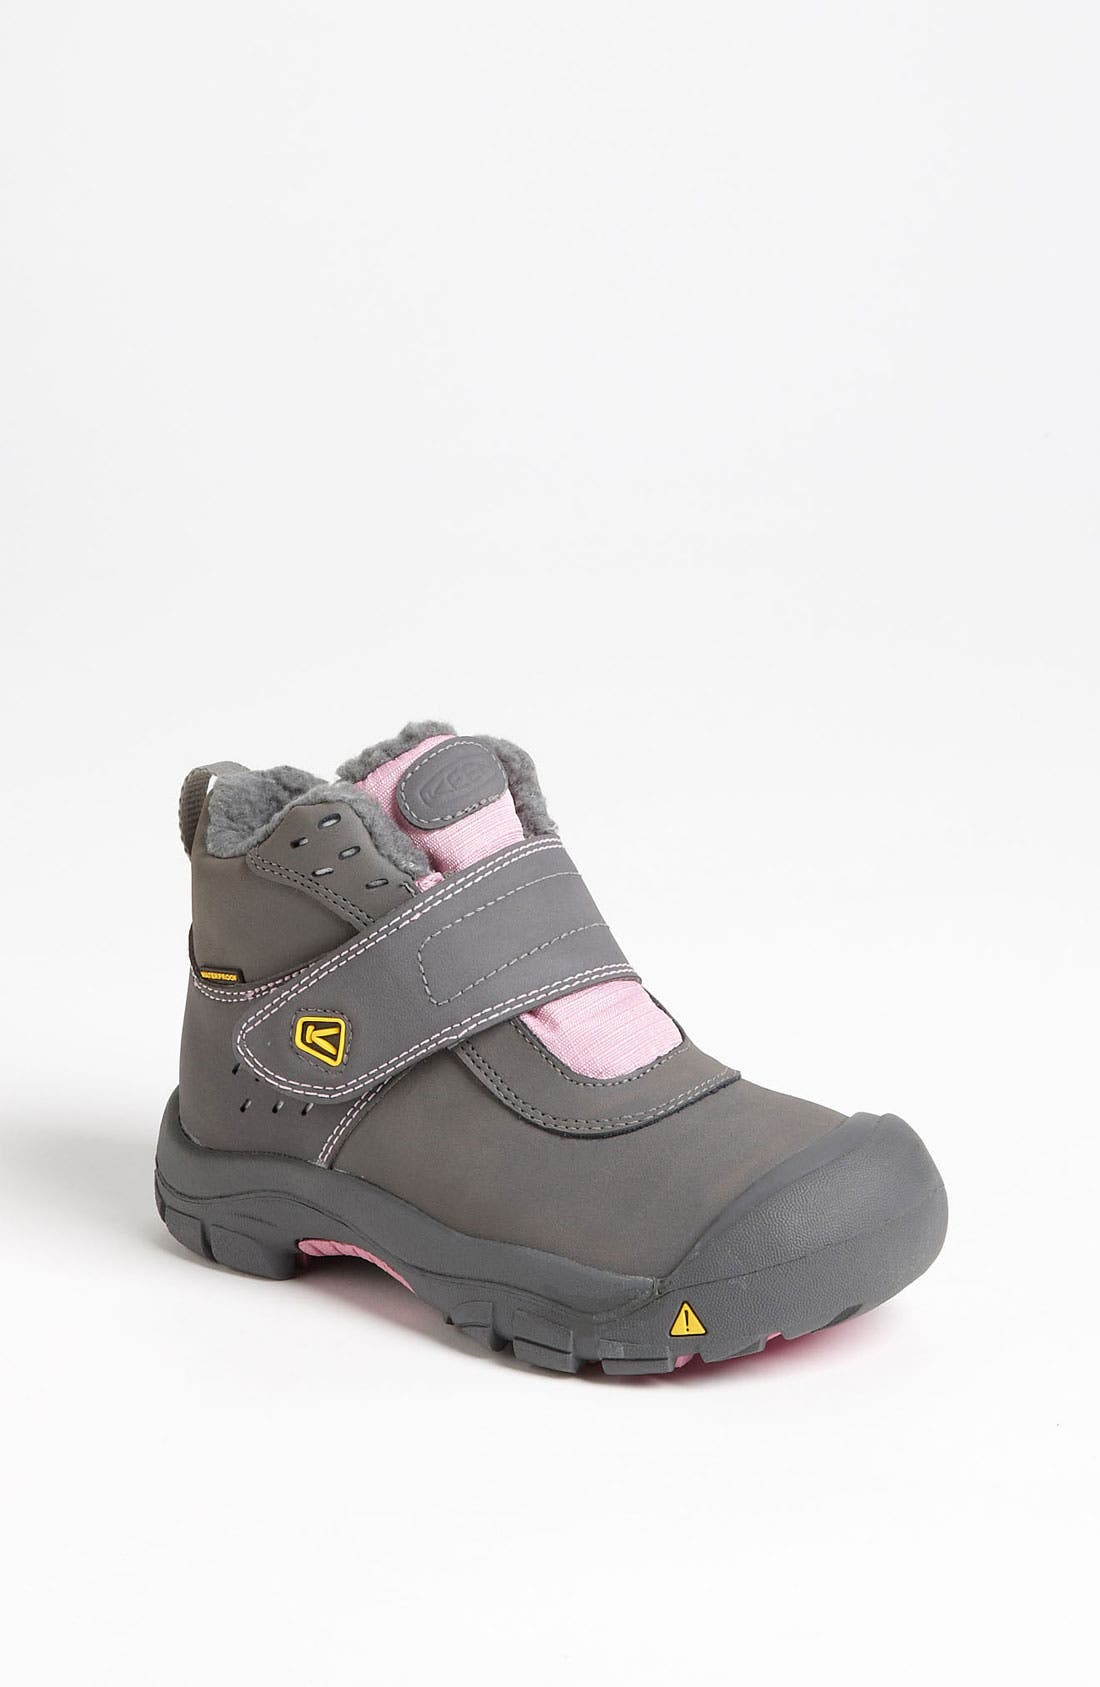 Alternate Image 1 Selected - Keen 'Kalamazoo Mid' Waterproof Boot (Toddler, Little Kid & Big Kid)